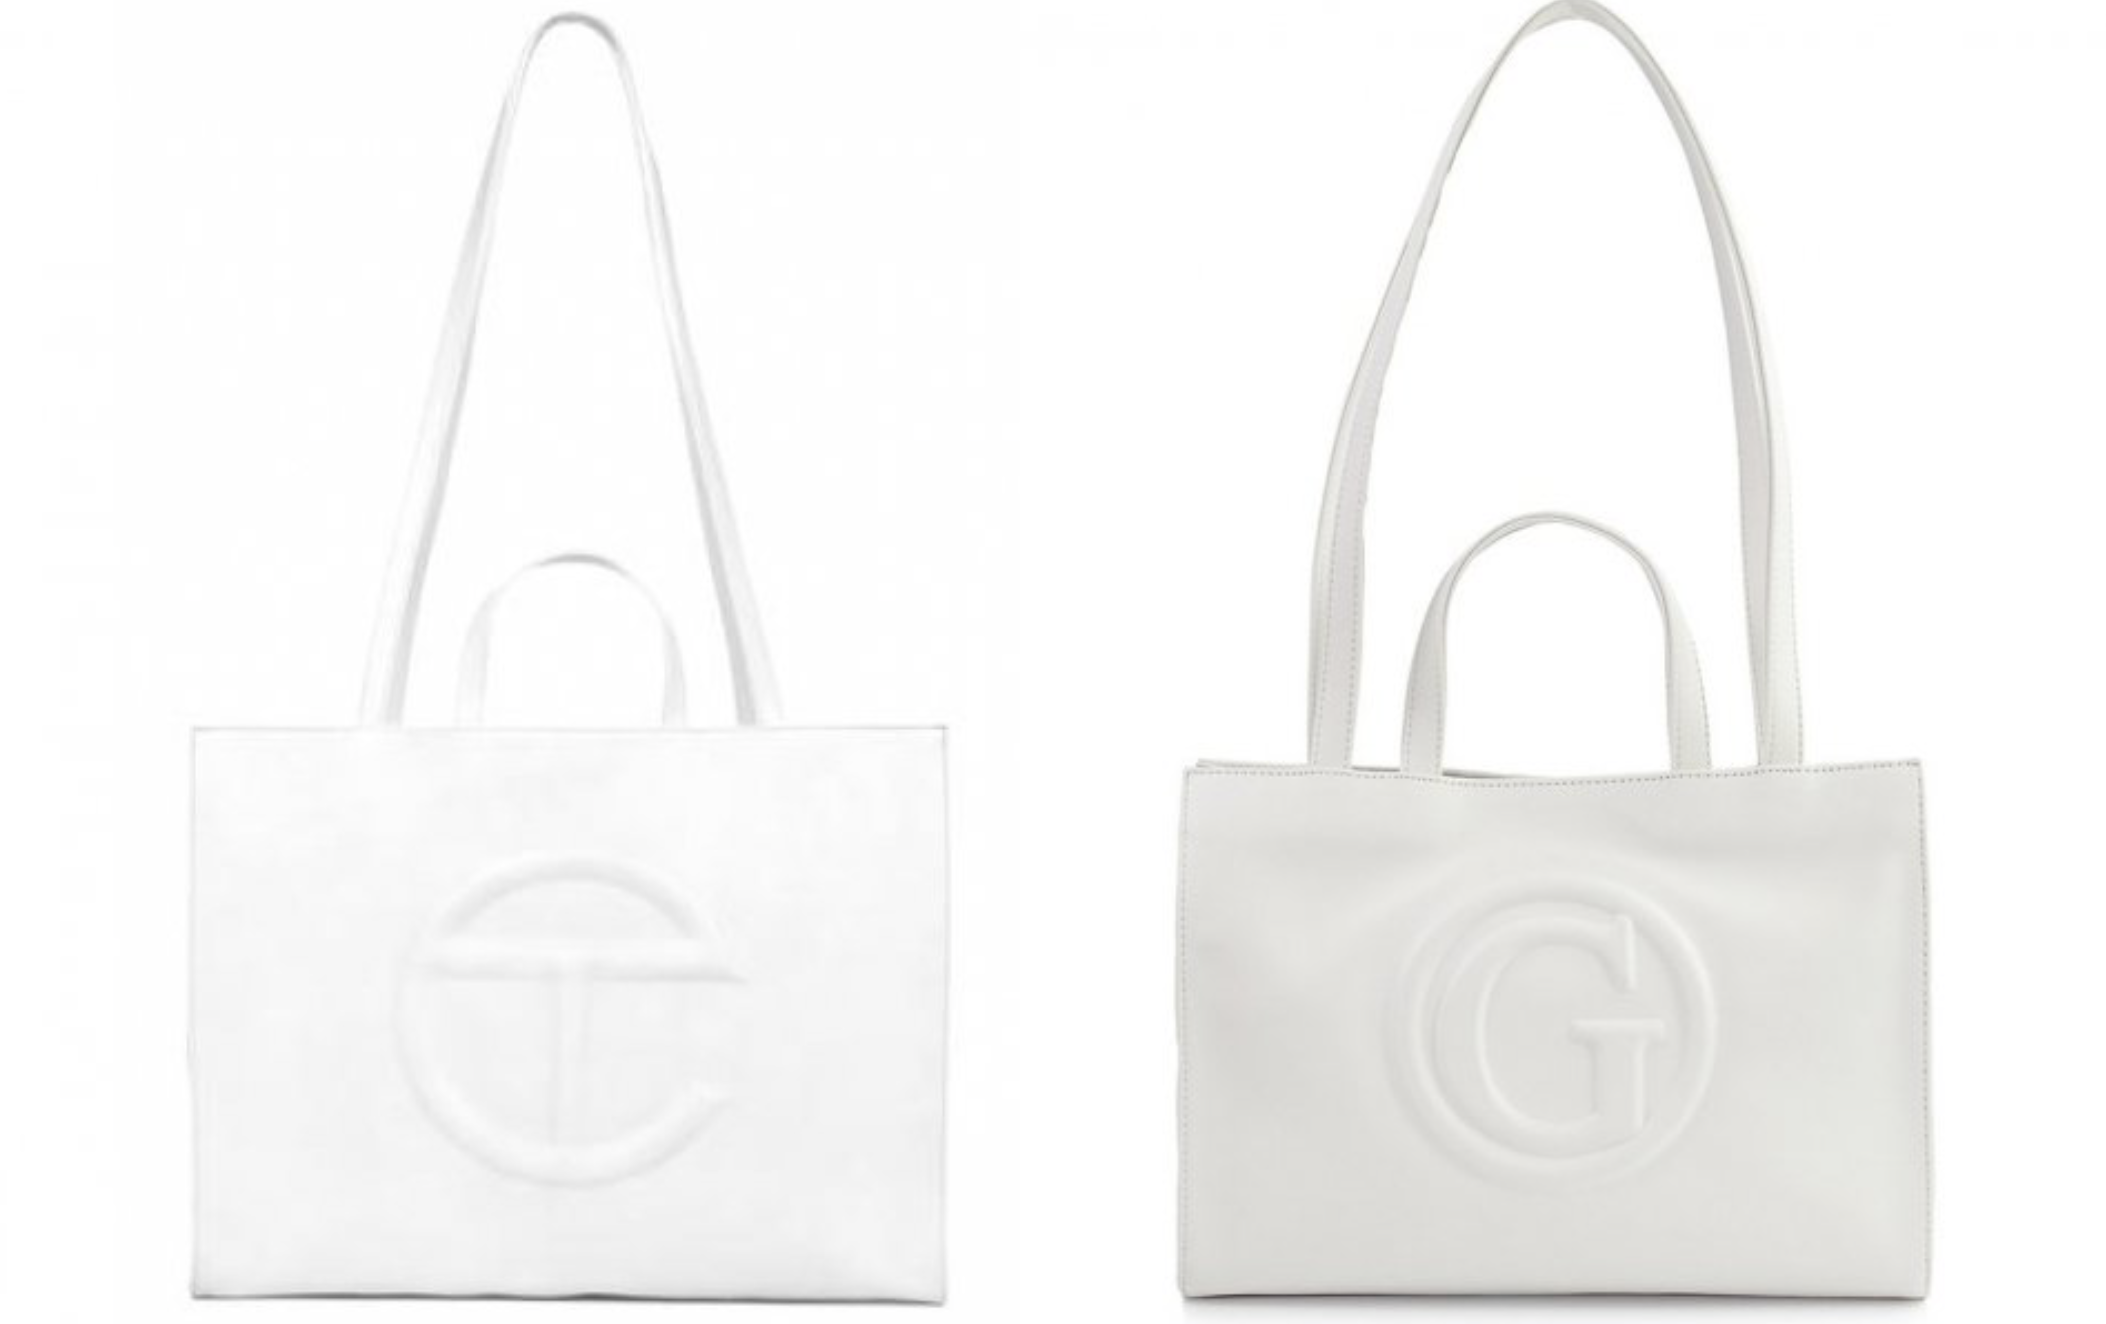 GUESS Halts Sales of Their Latest Handbag that Dangerously Draws Similarities to Black-Owned Telfar Global designs